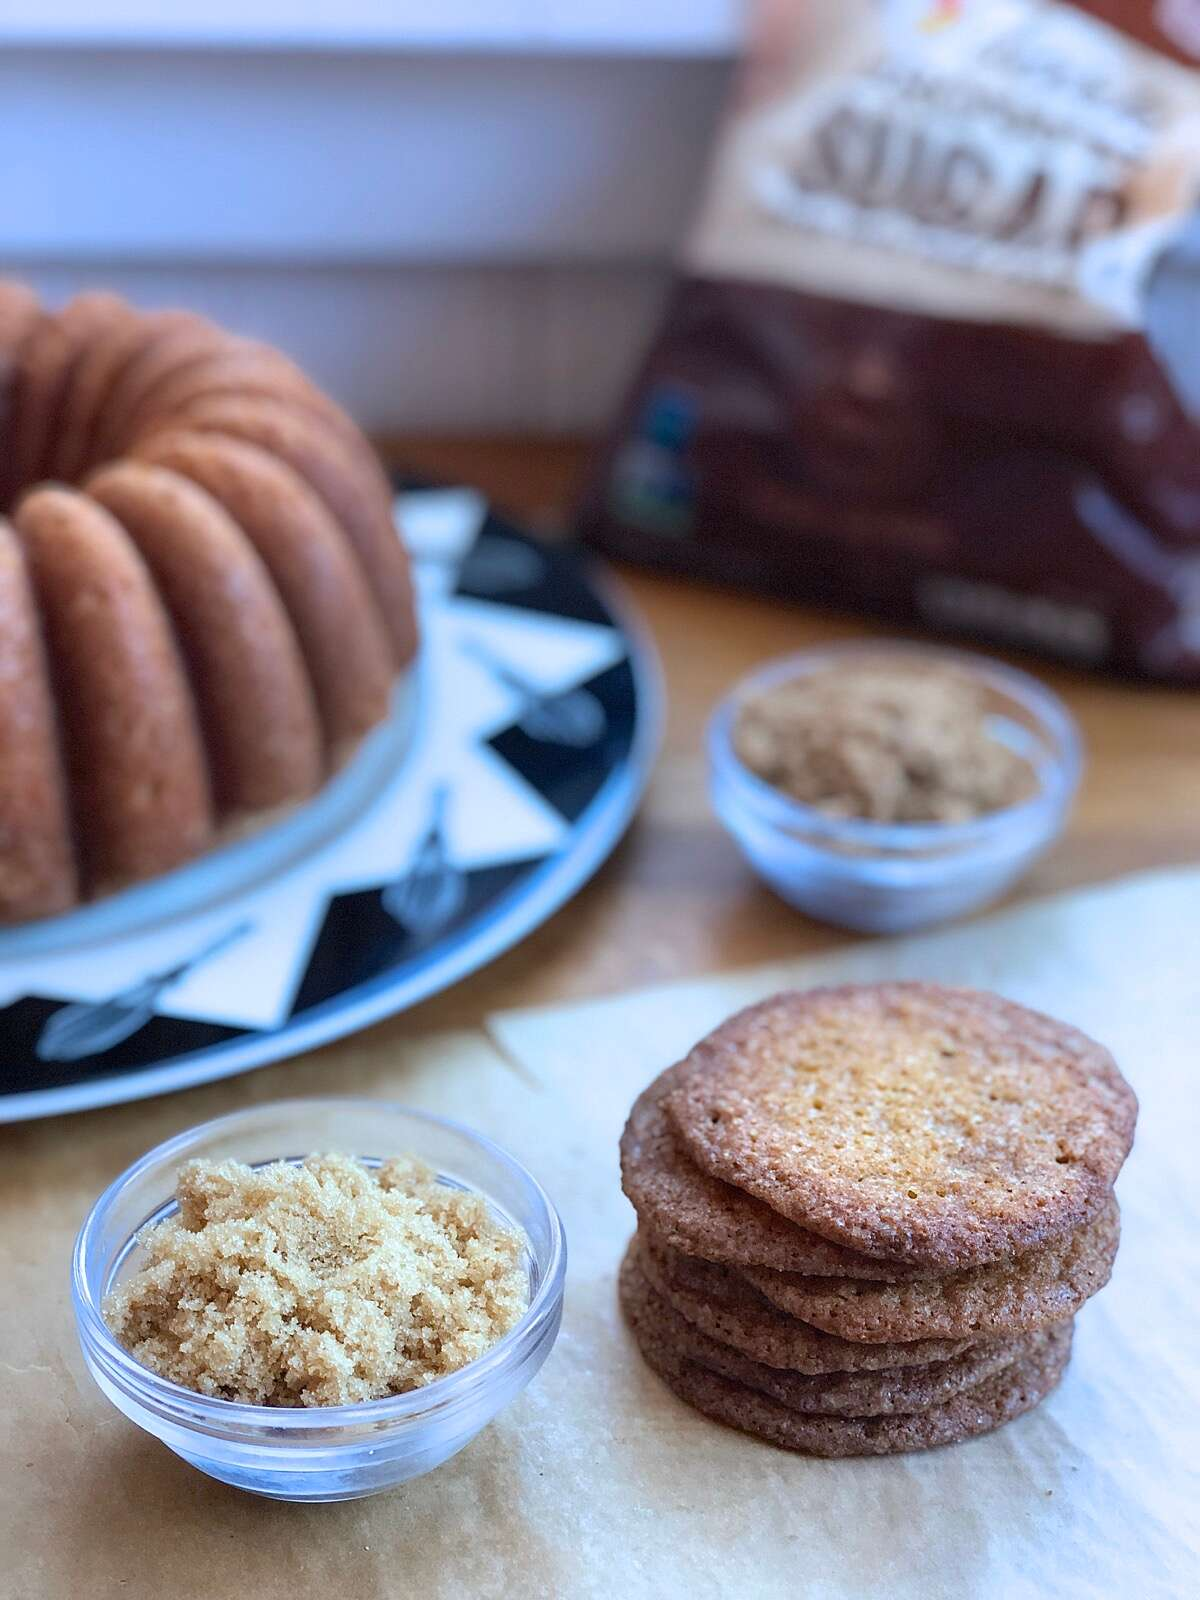 Brown sugar pound cake and buttersnap cookies on a table, bag of brown sugar in the background.